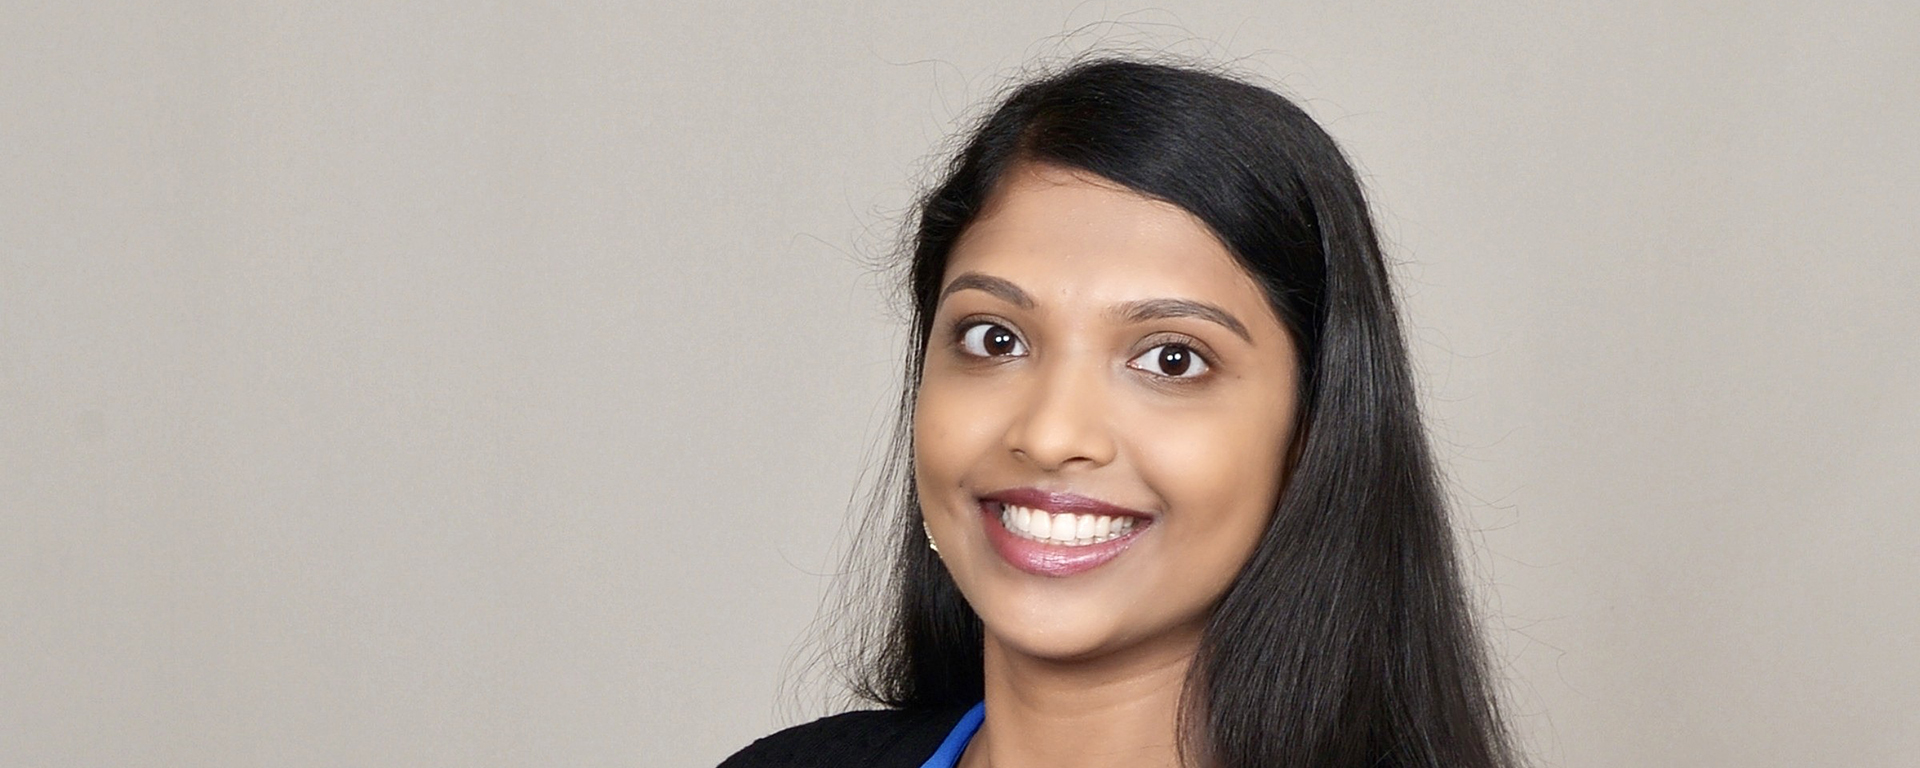 Usha, a Capital One senior data engineer, uses her passion in tech to innovate and solve real problems